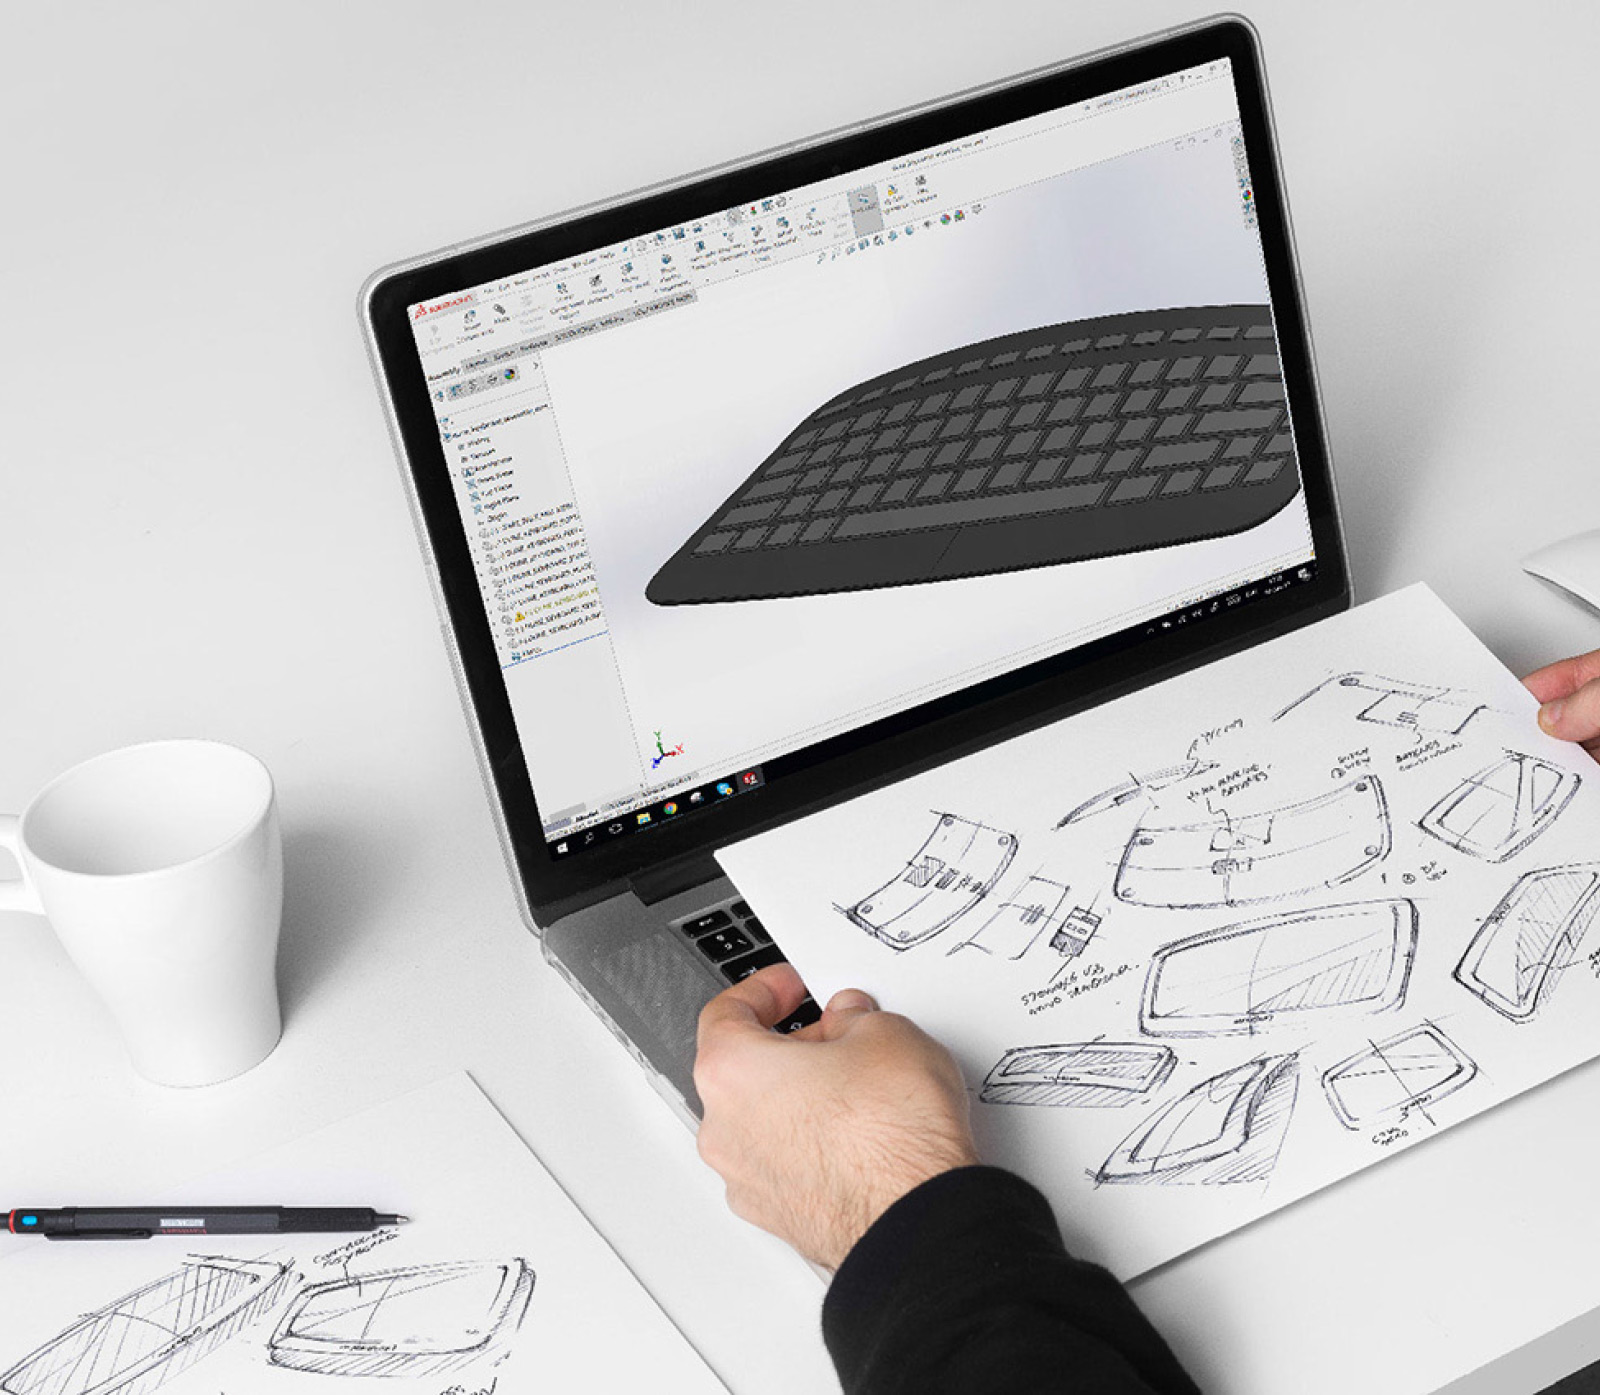 keyboard_design_engineering_development_011_home